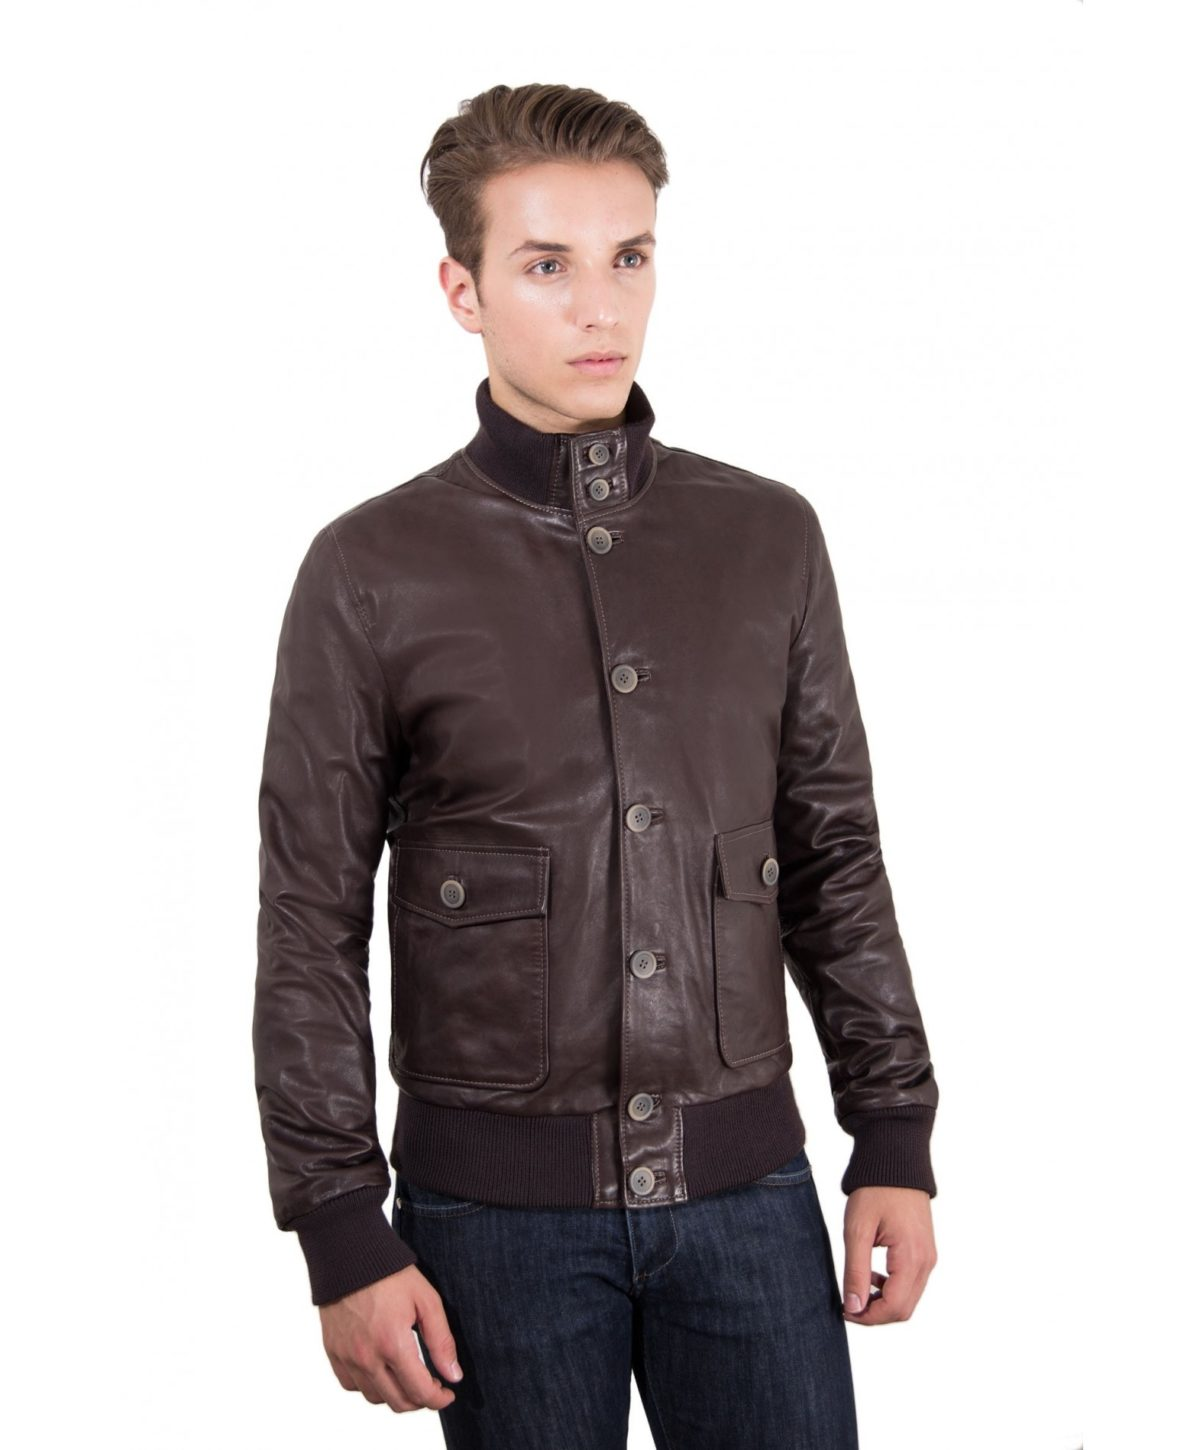 men-s-leather-jacket-genuine-soft-leather-style-bomber-wool-cuffs-and-bottom-buttons-closing-dark-brown-color-alex-bottoni